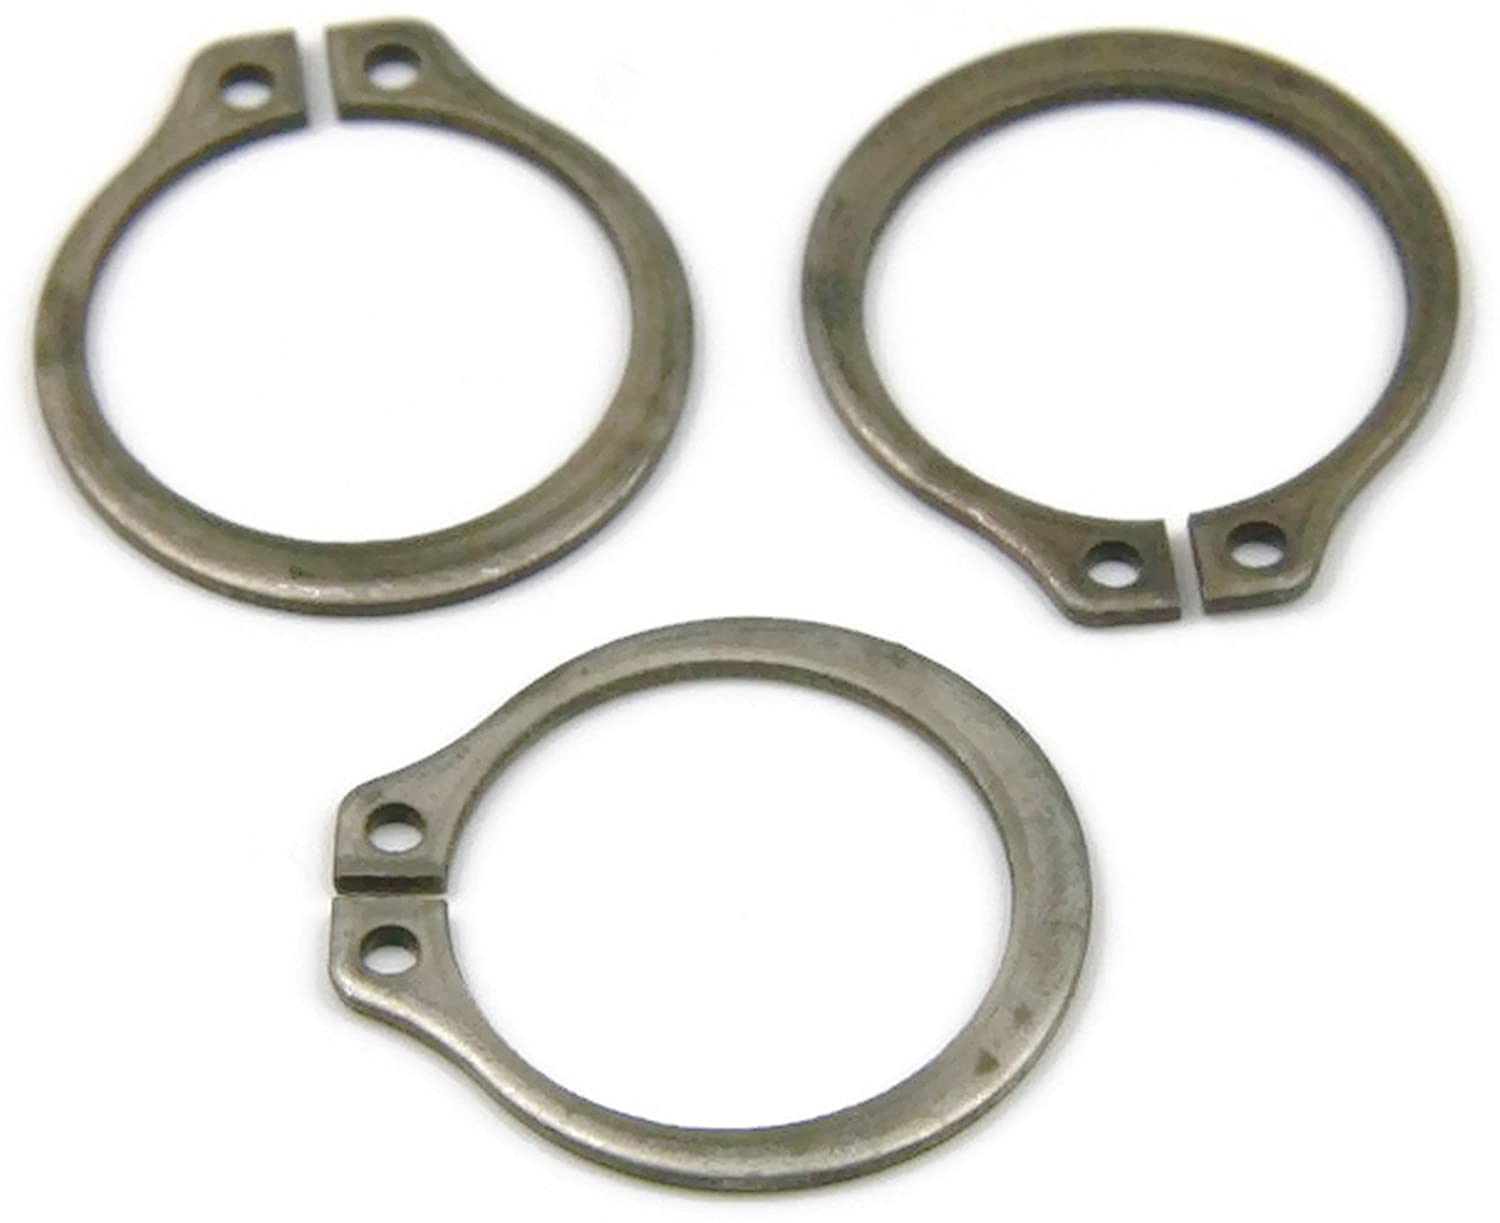 Stainless Steel Snap Rings Retaining Rings SH-118SS 1-3//16 Qty 100